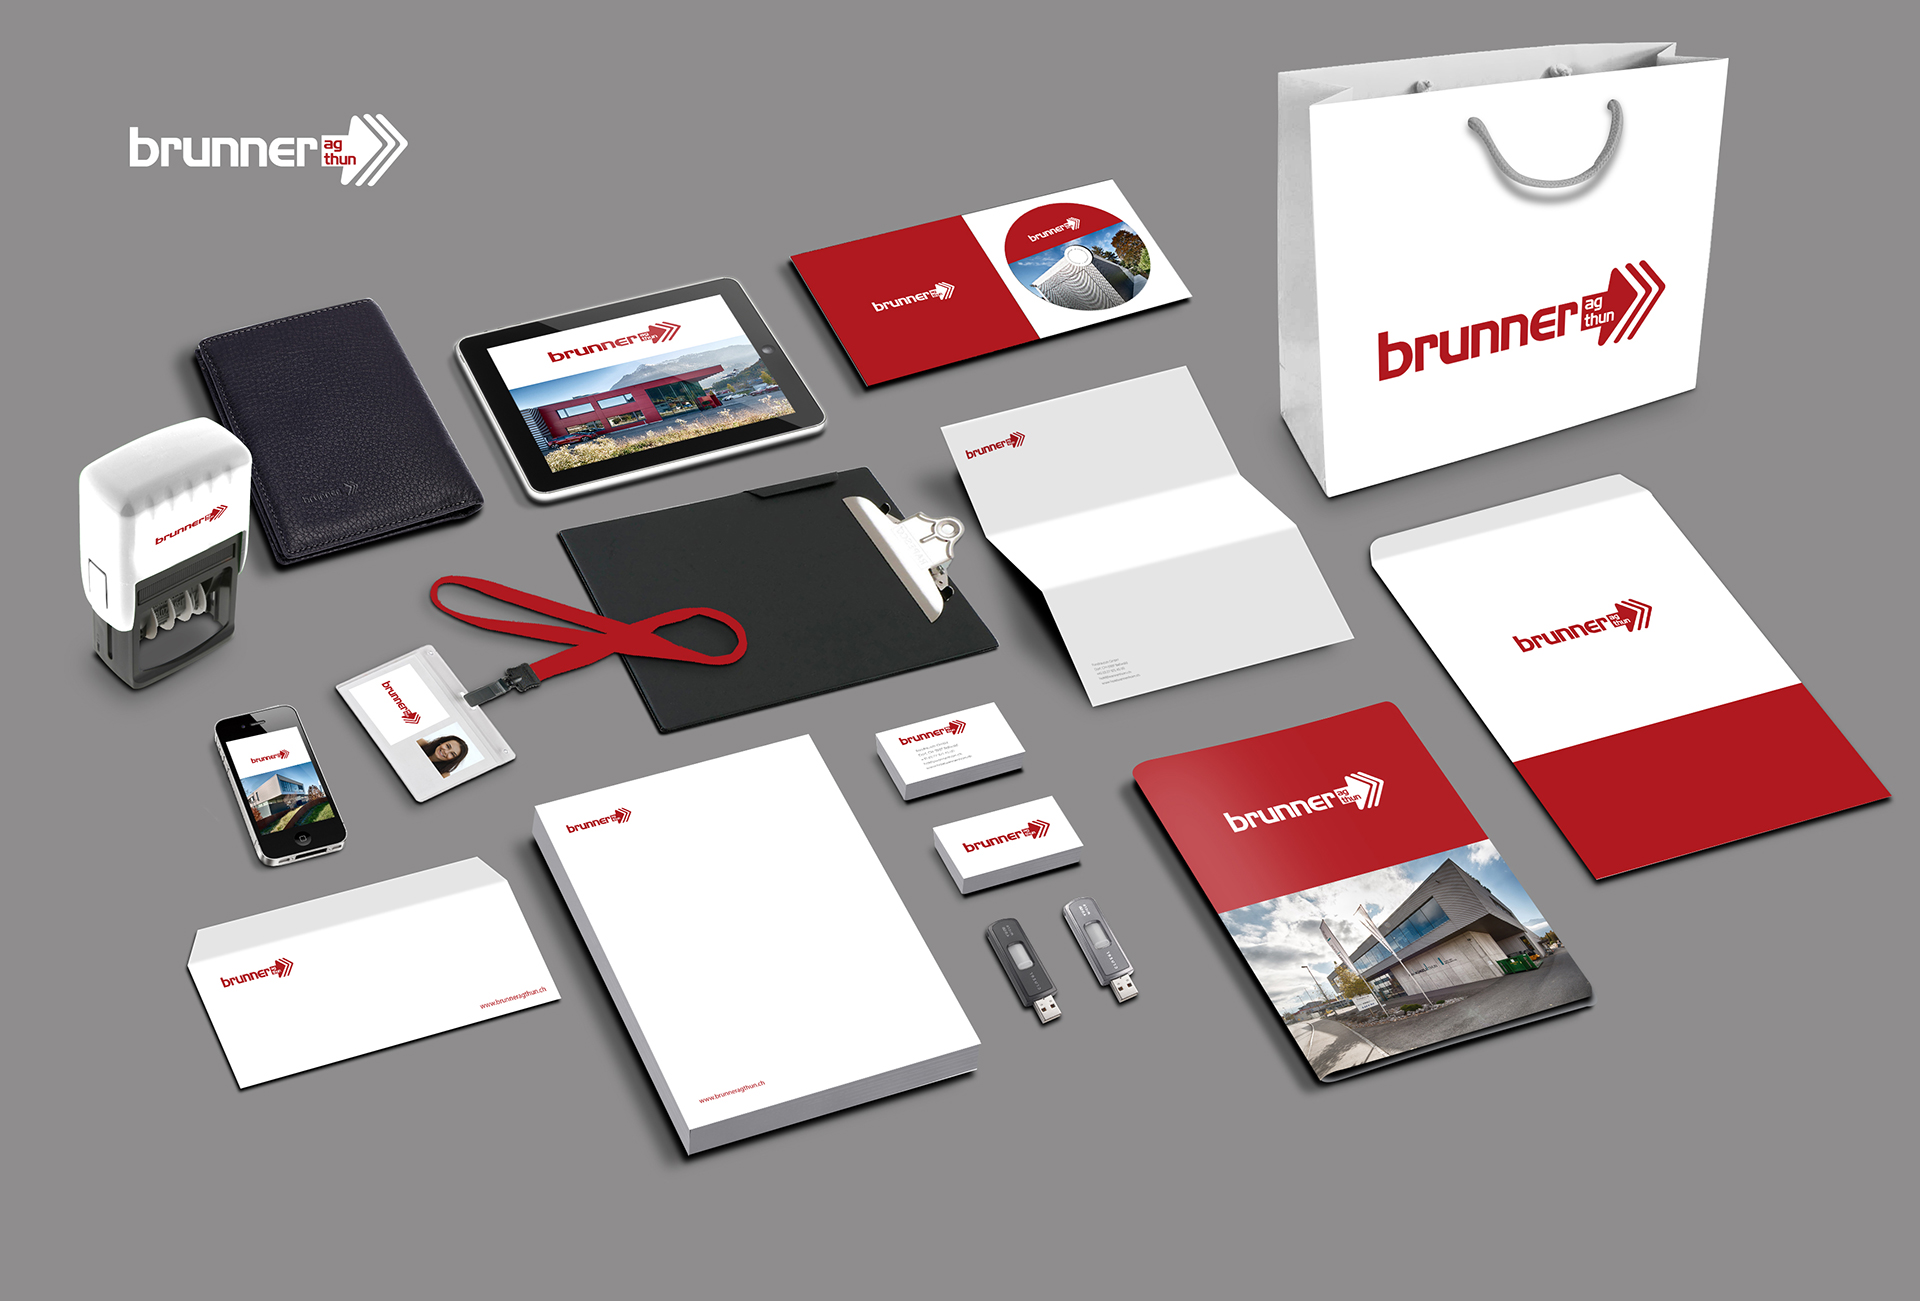 BAG_Corporate-Design-Mockup_1920pix